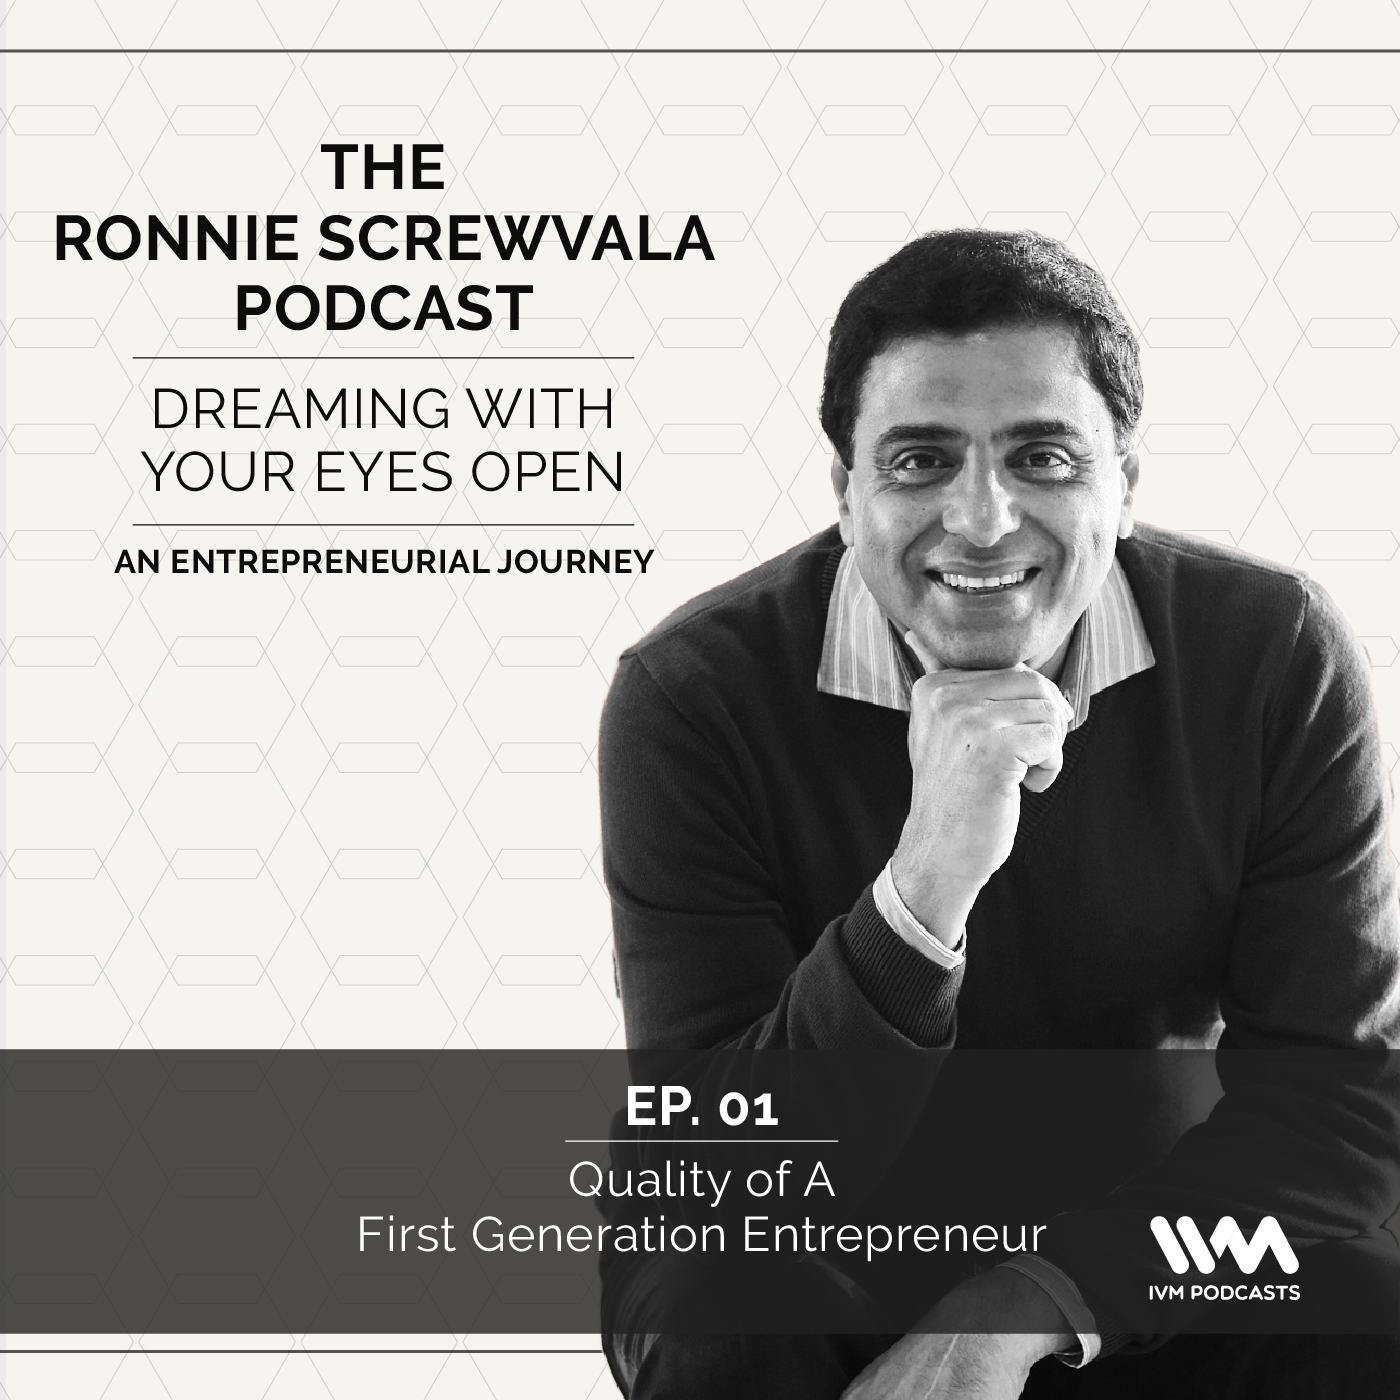 Ep. 01: Quality of A First Generation Entrepreneur